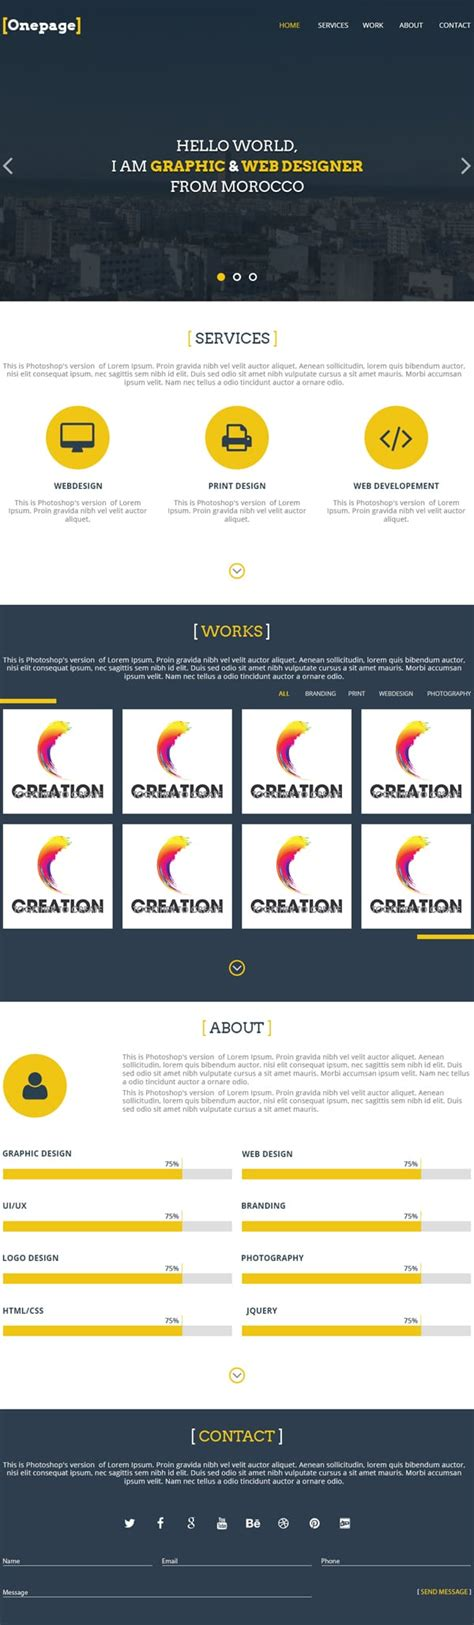 gugggly download free website templates part 3